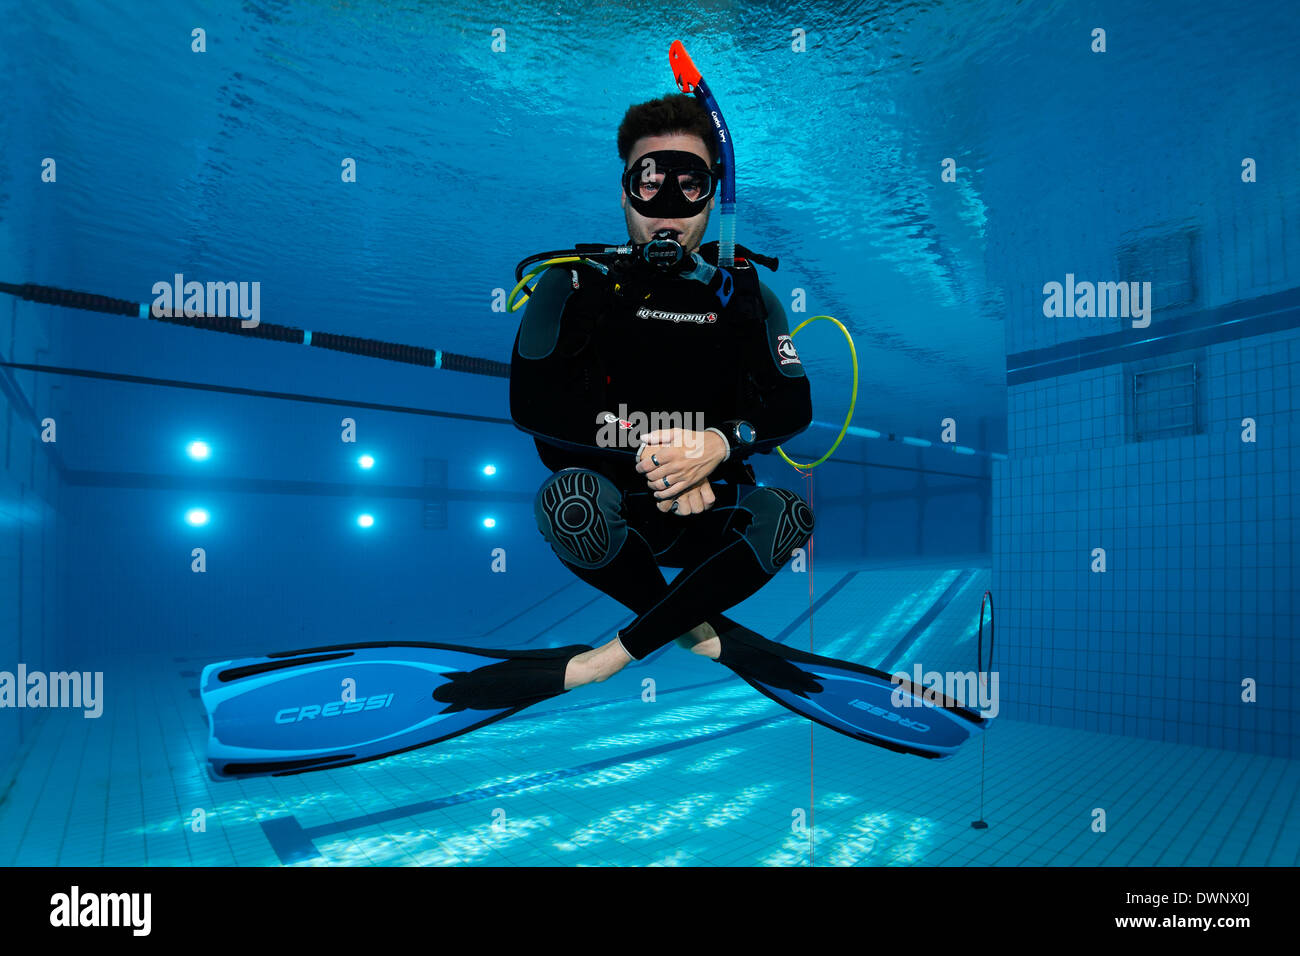 Dive training, balancing, in a swimming pool, Nuremberg, Bavaria, Germany - Stock Image